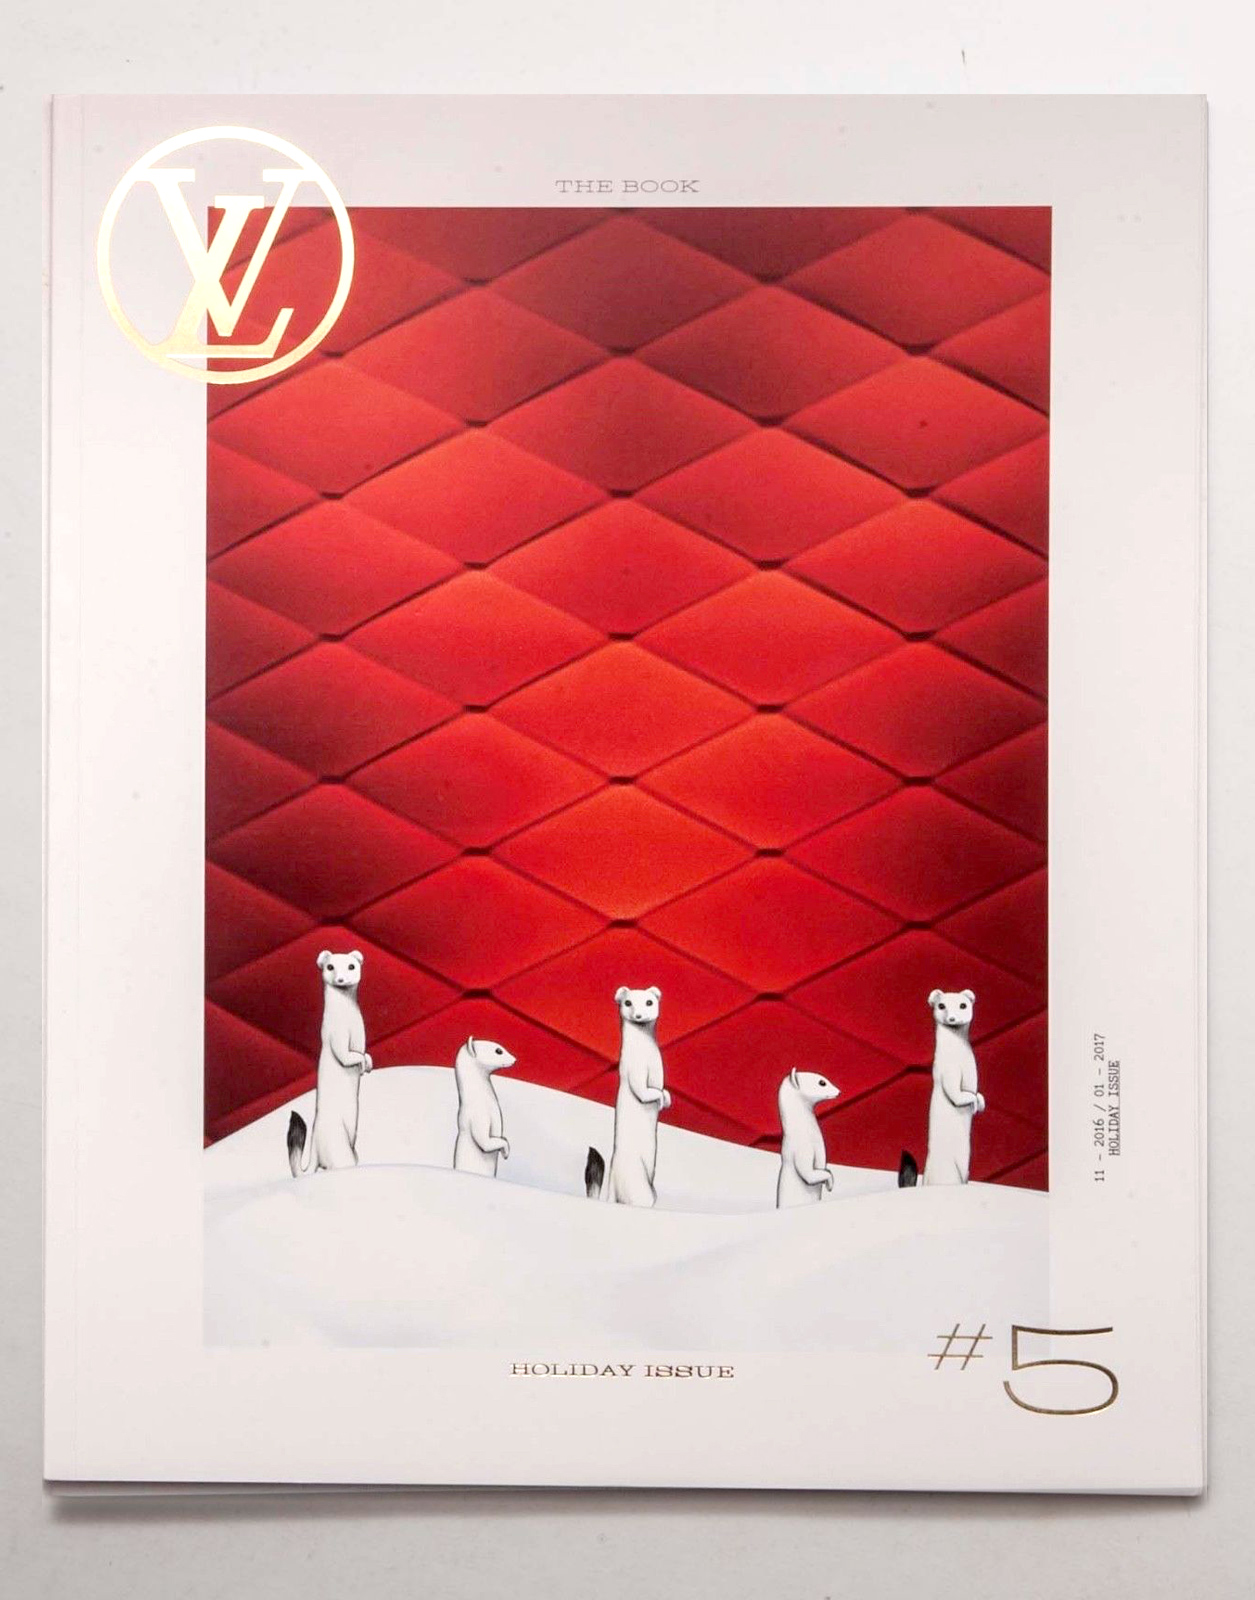 Louis Vuitton Paris The Book #5 Magazine Quarterly Season Fashion Catalog Pret a Porter Ready to Wear RTW Cover Accessories Catalog Maroquinerie Men Women Cover Nicolas Ghesquière Automne - Hiver 2016 – 2017 Holiday Gifts